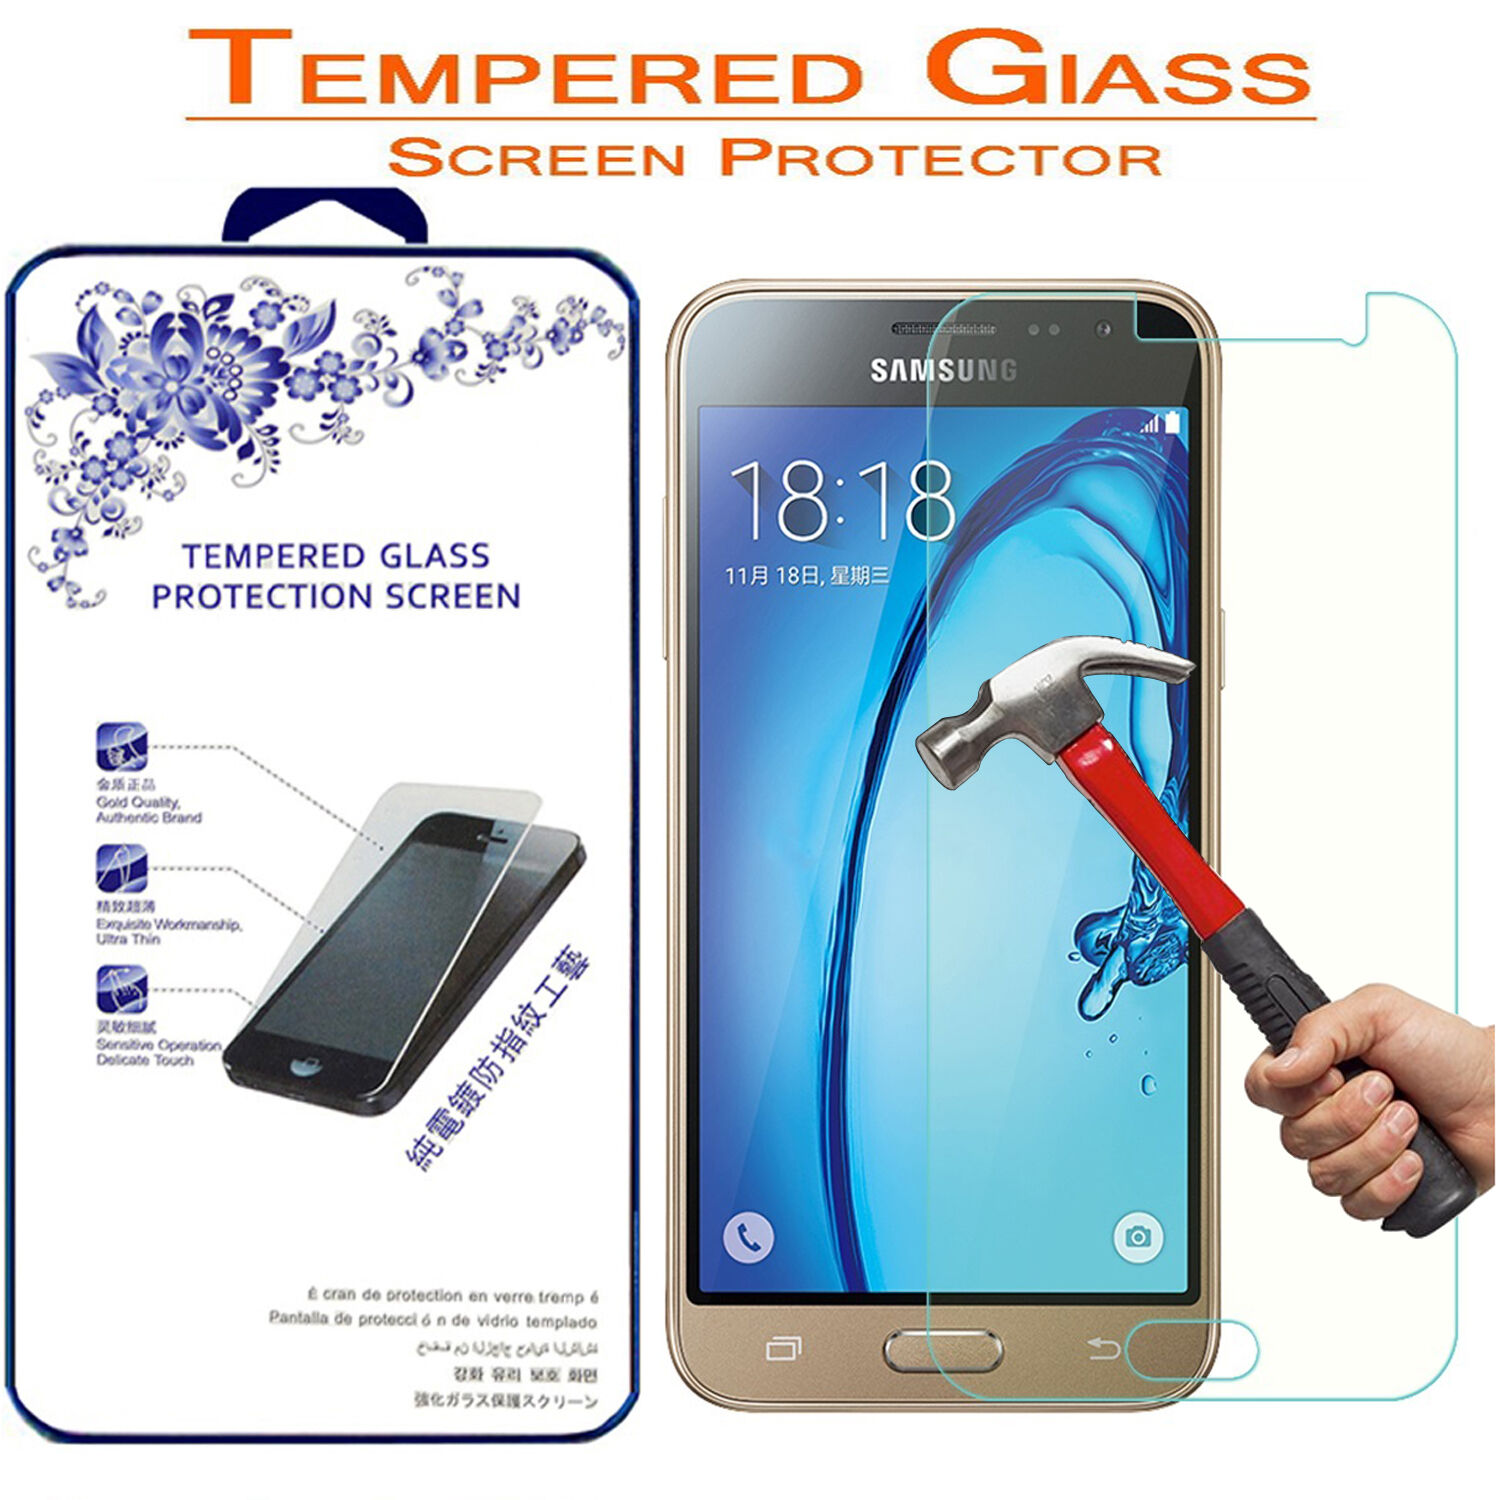 For Samsung Galaxy J3 2016 Version Sm J320 Hd Tempered Glass Screen Protector 1 Of 5free Shipping